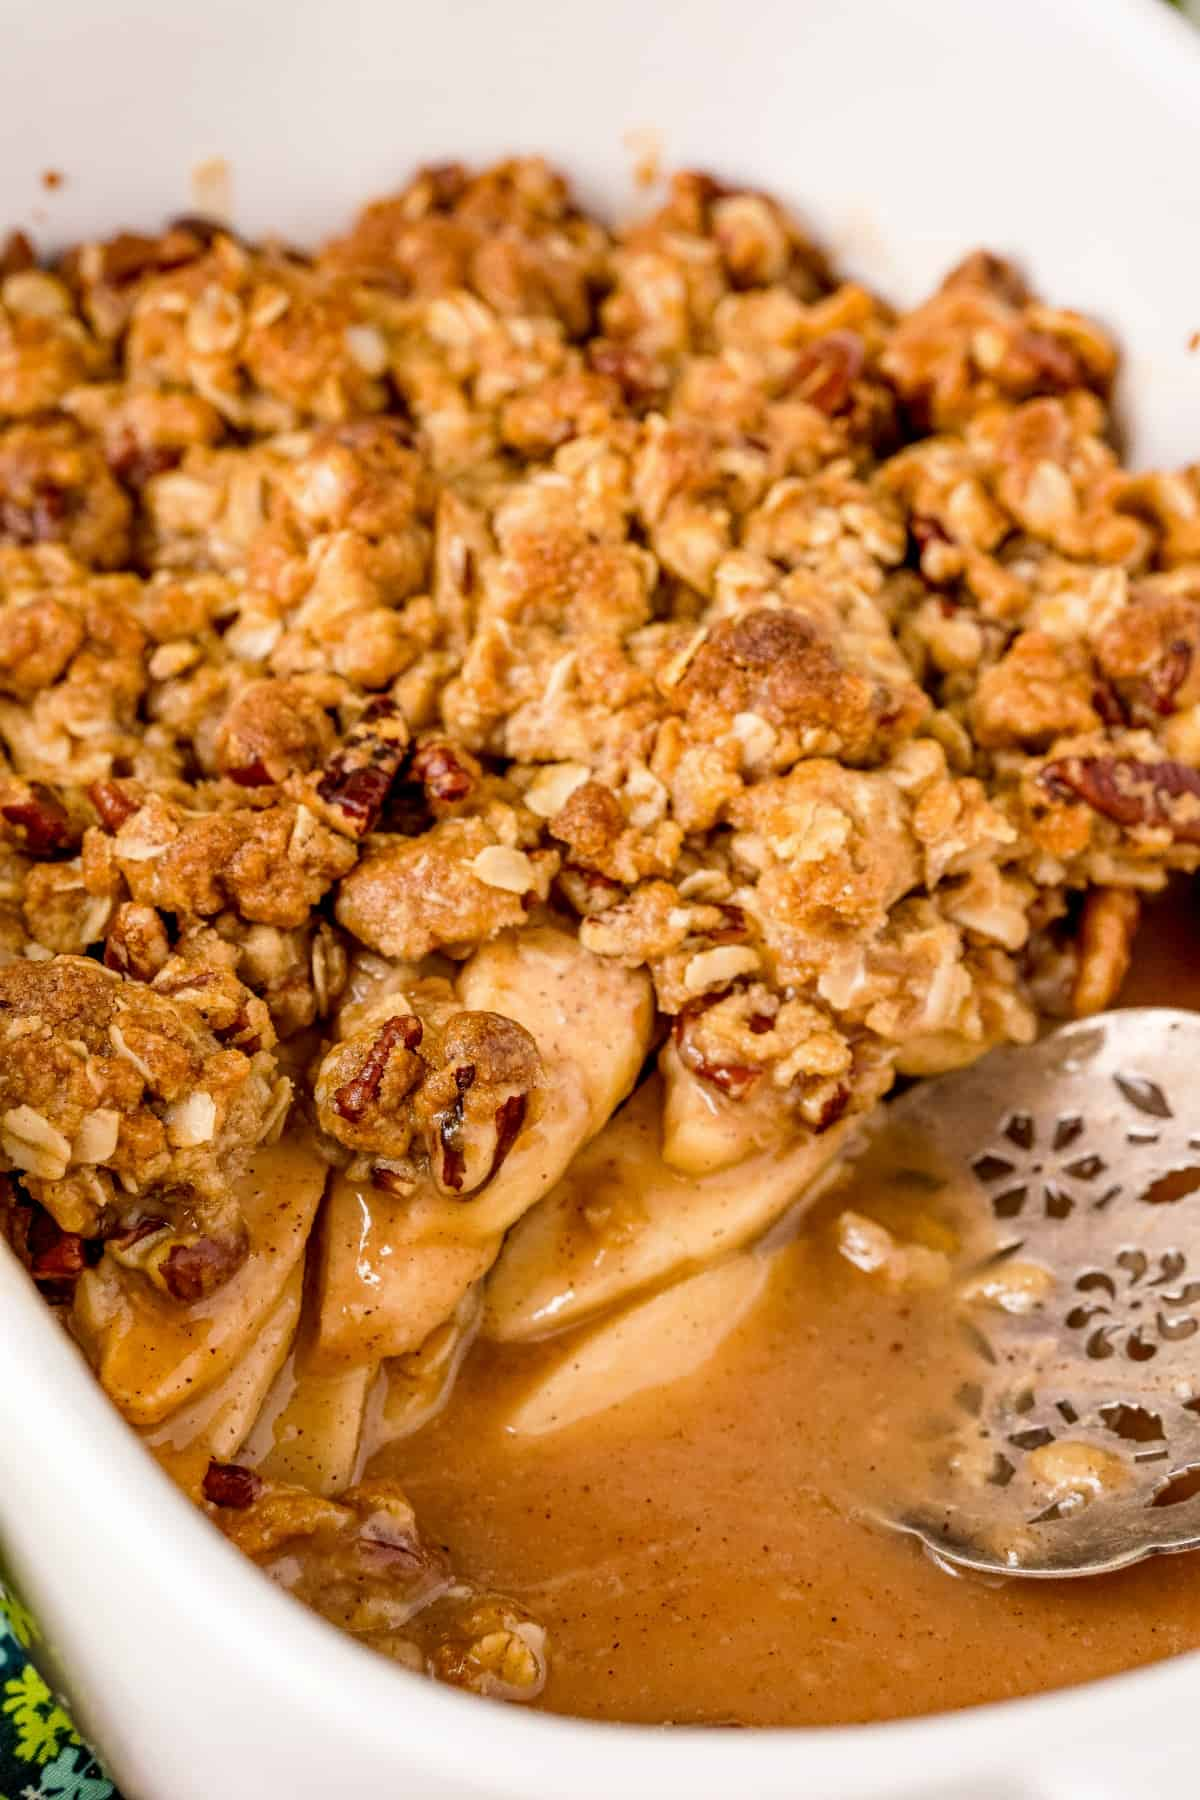 Caramel apple crisp in baking dish.